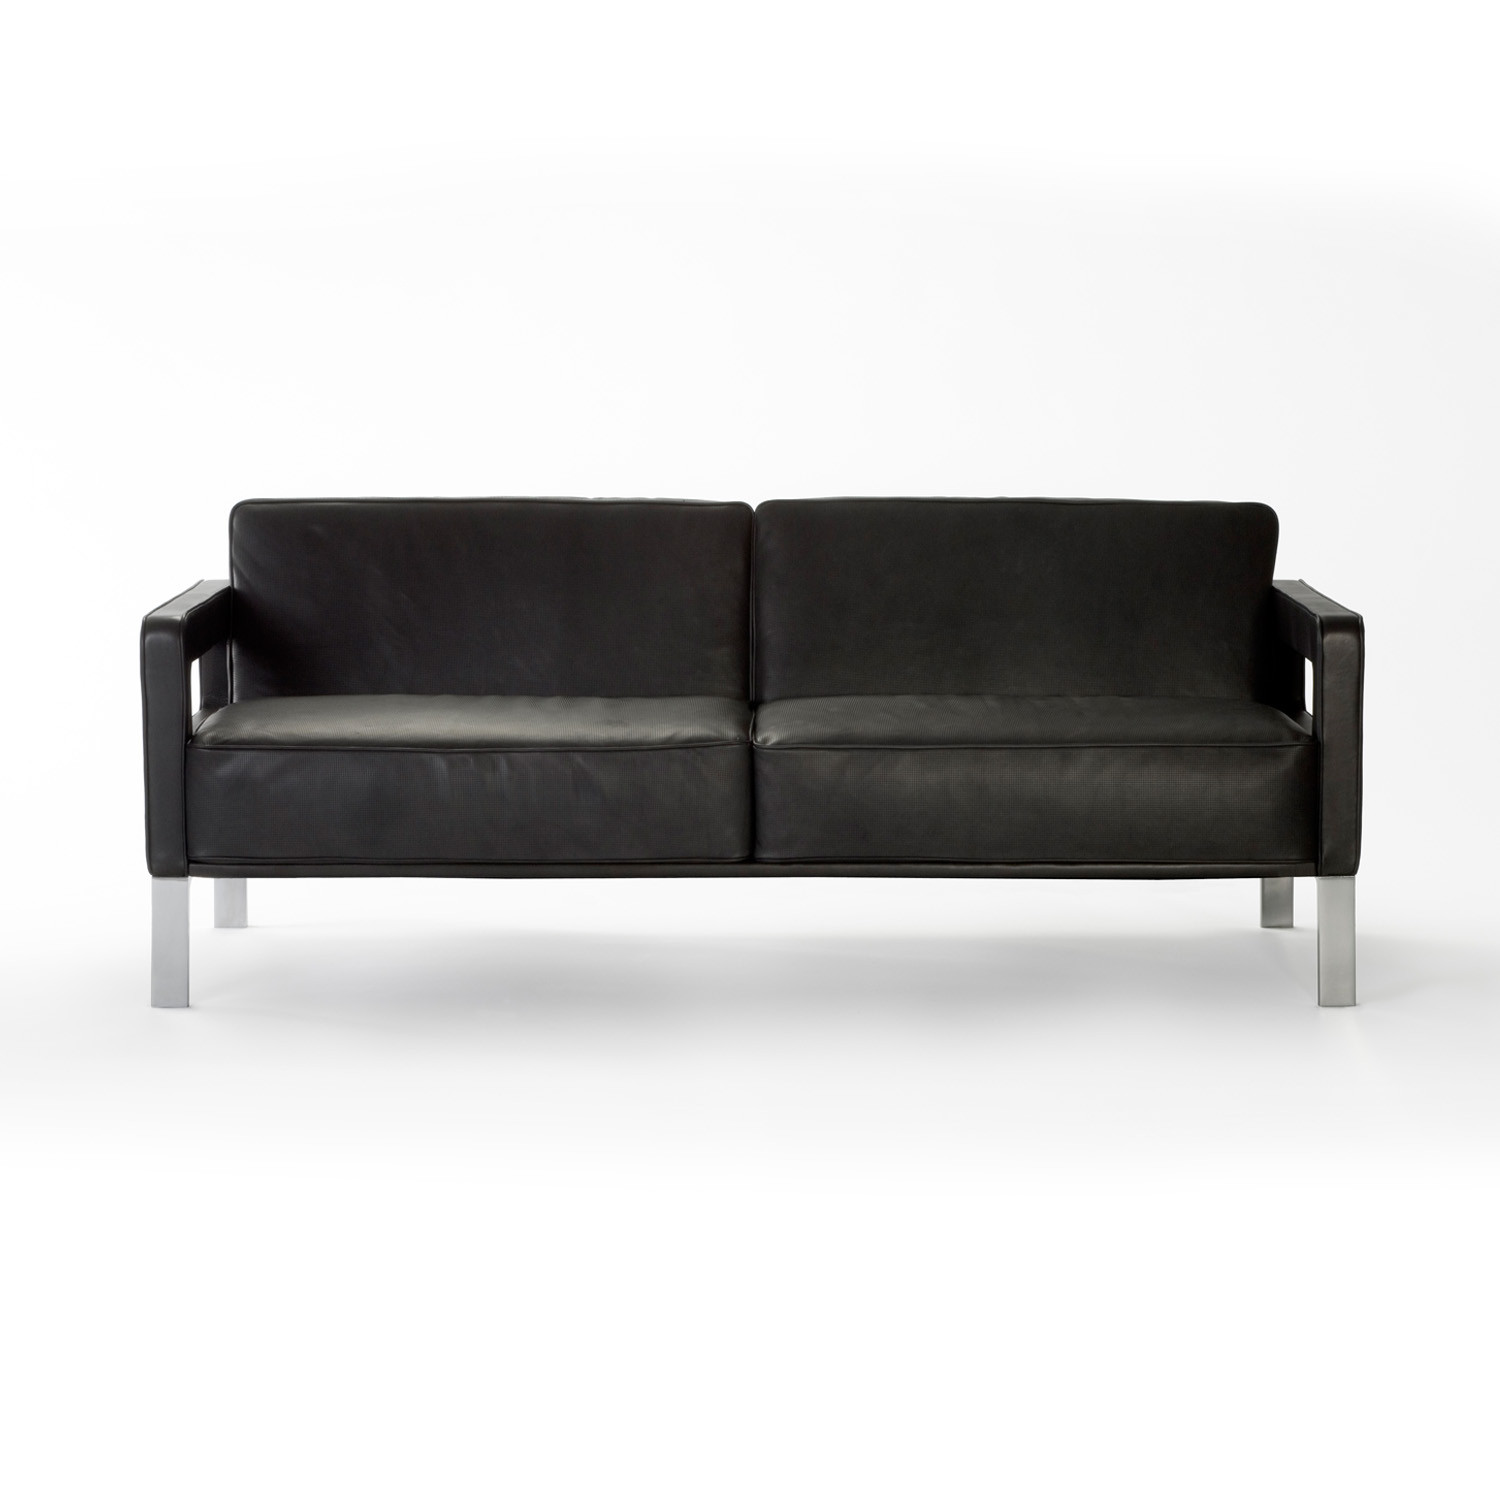 Cubic 2-seater Sofa